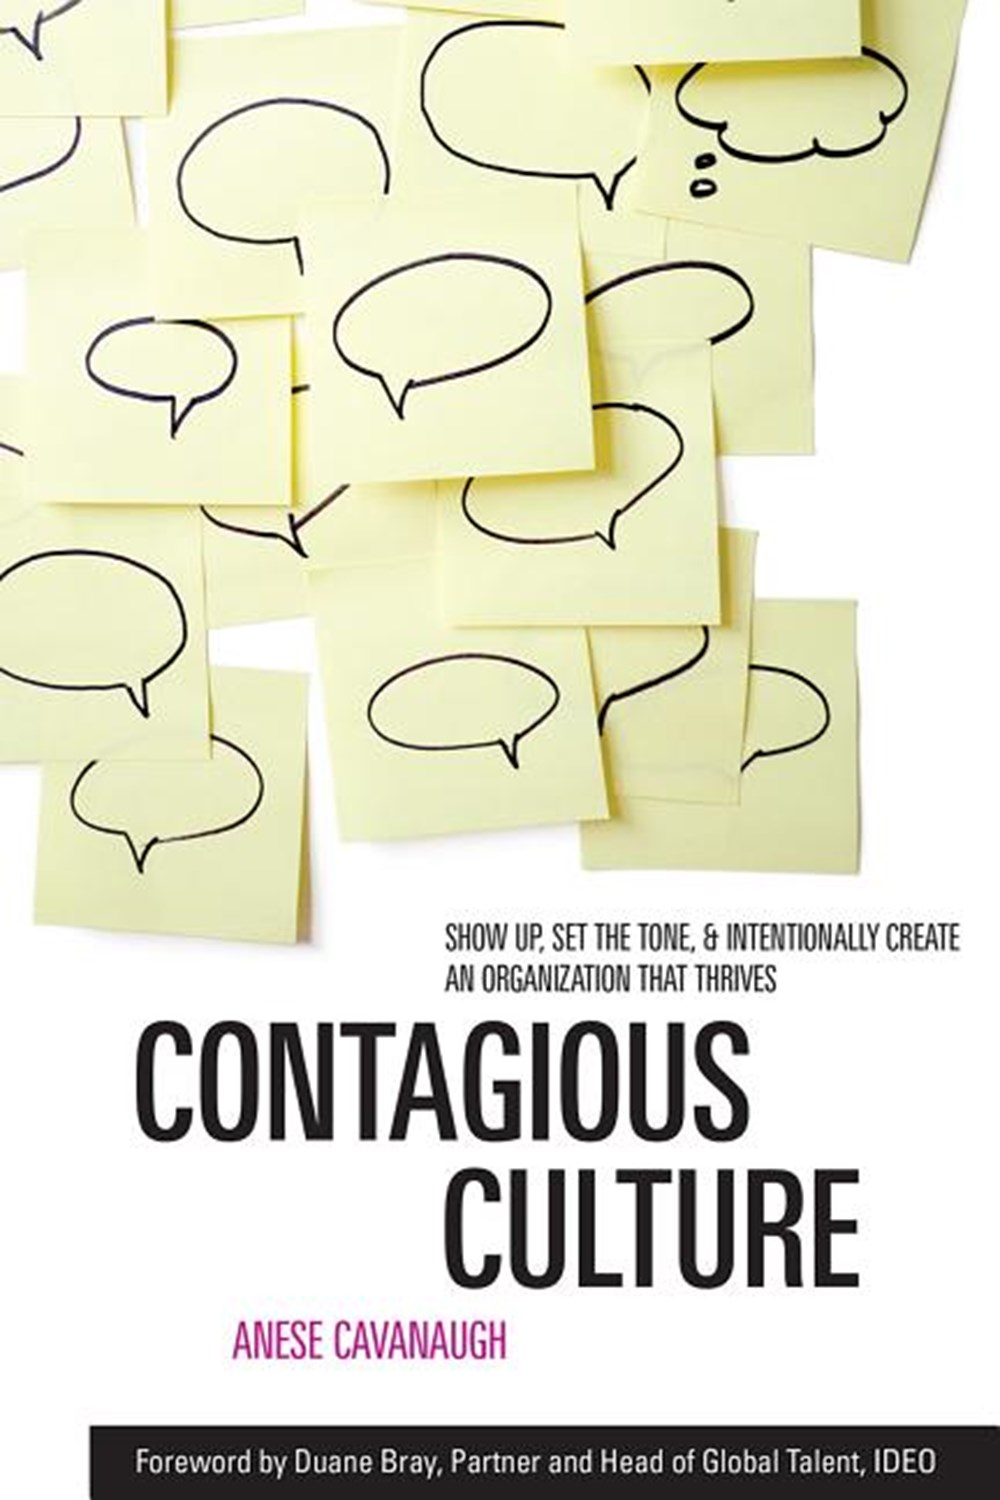 Contagious Culture Show Up, Set the Tone, and Intentionally Create an Organization That Thrives